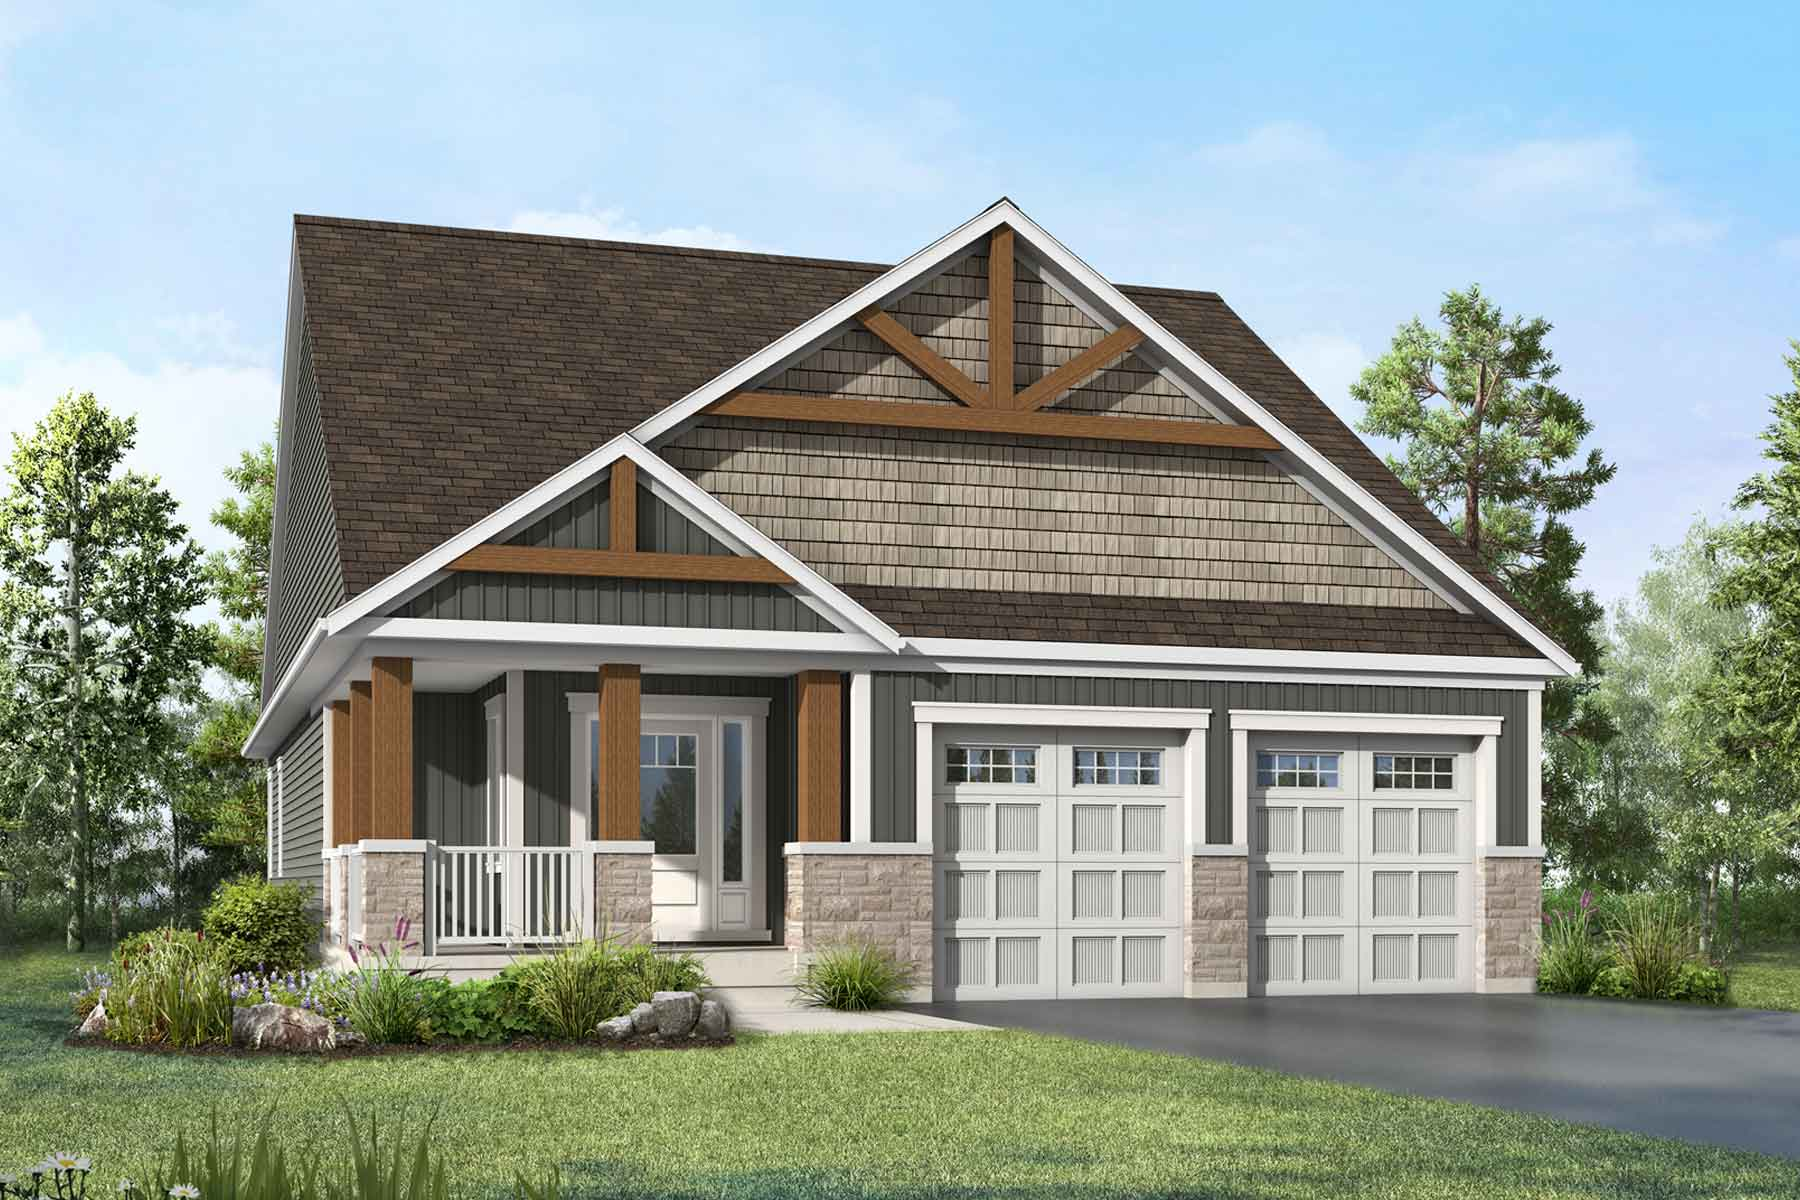 Chestnut Plan Elevation Front at White Pines in Bracebridge Ontario by Mattamy Homes